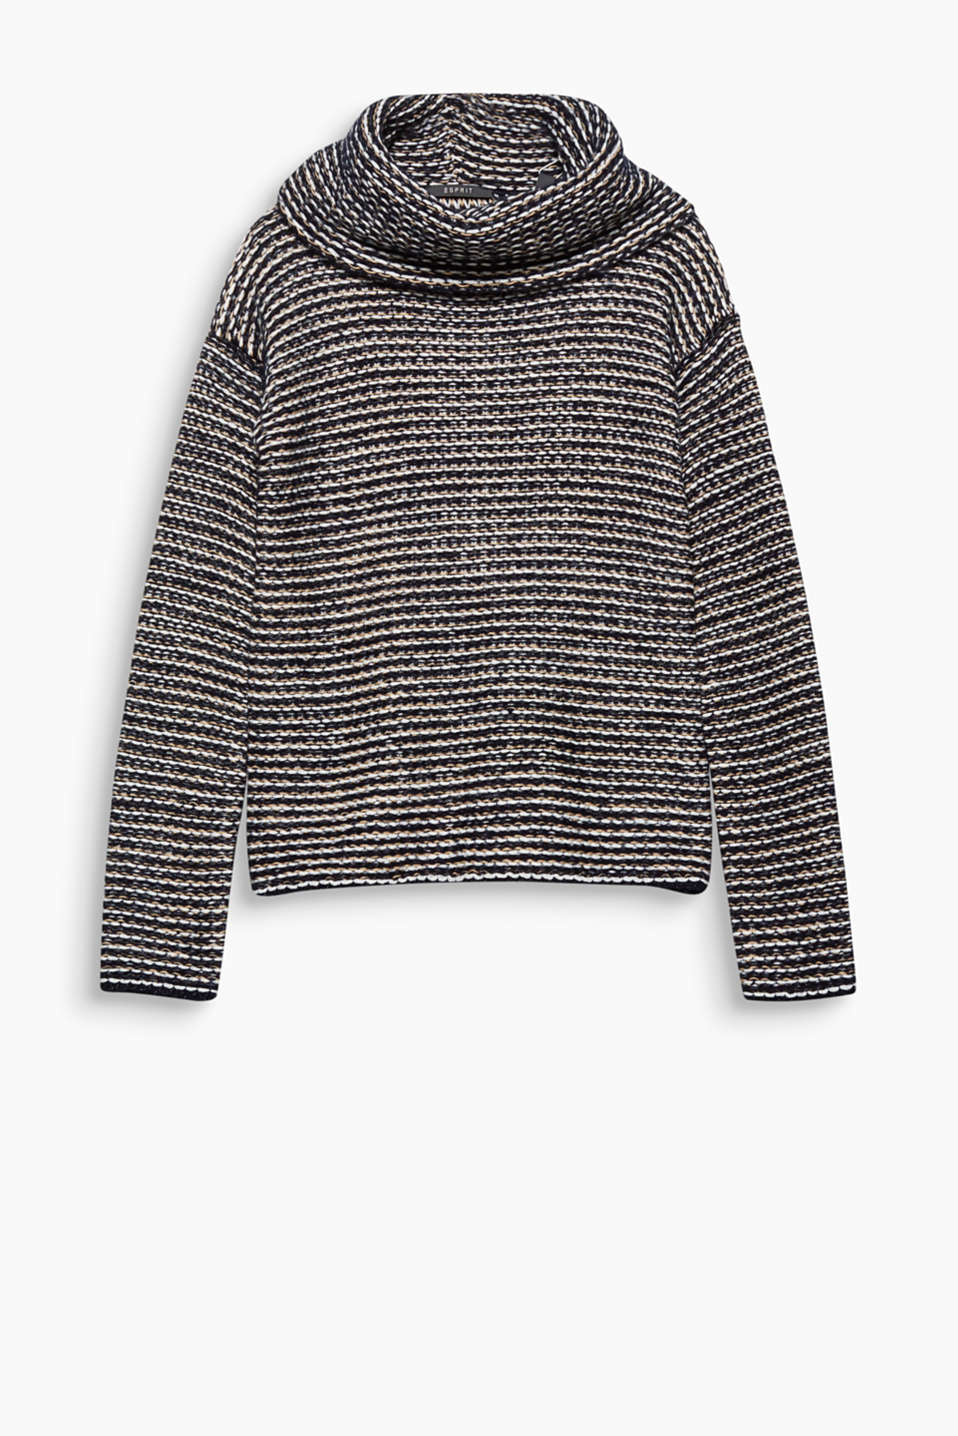 A must-have for cold days: This textured striped jumper with a wide polo neck will wrap you up in warmth and style!